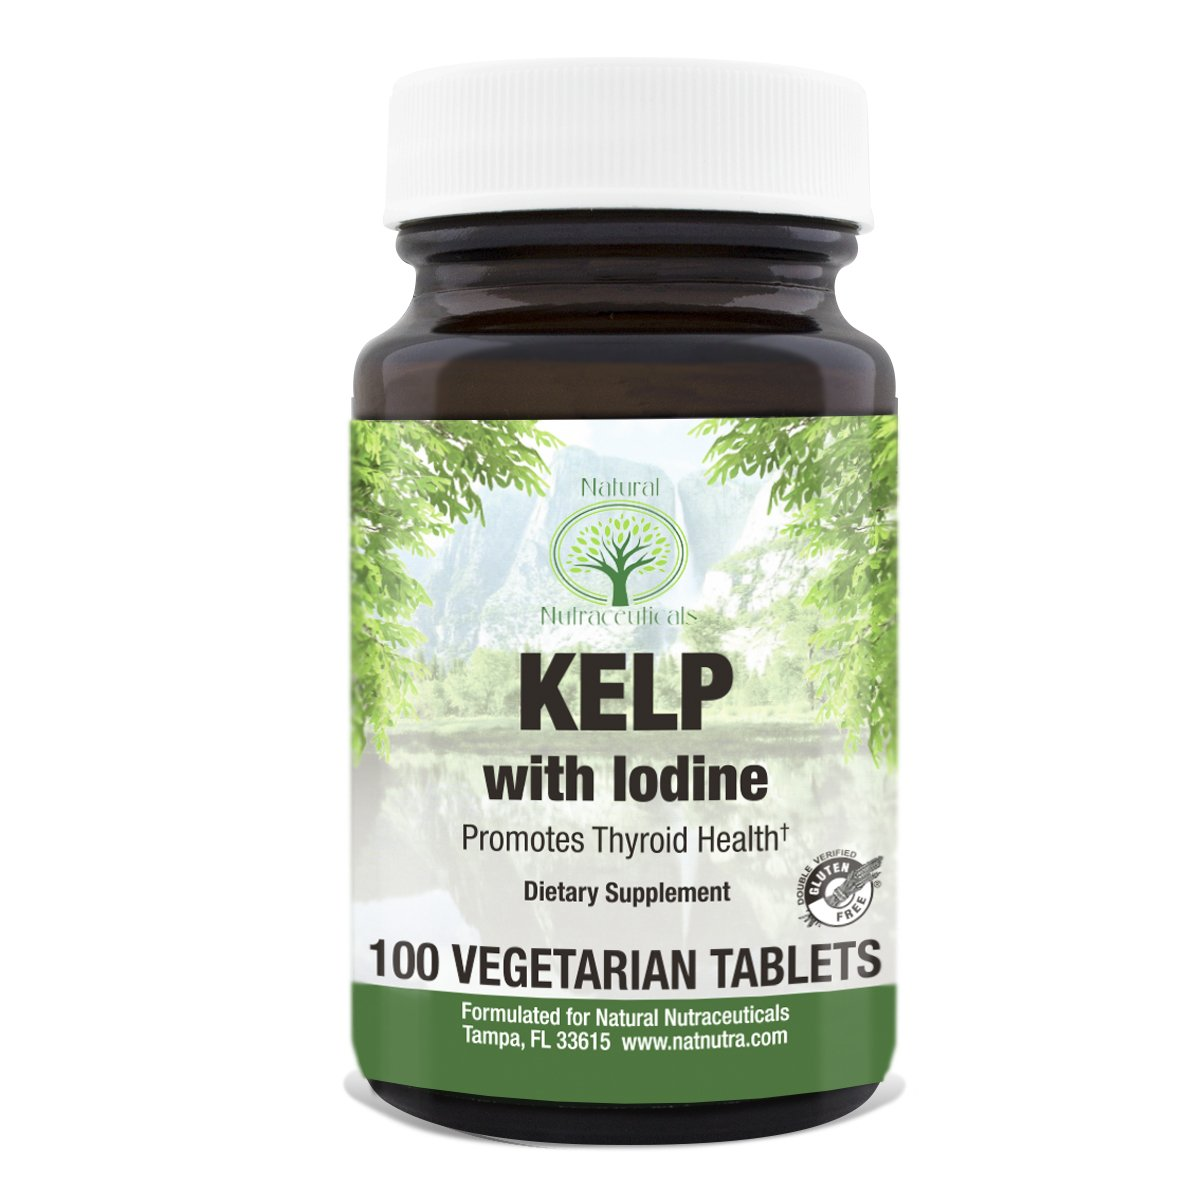 Natural Nutra Kelp Iodine Supplement, North Atlantic Sourced Seaweed Extract, 225 mcg, 100 Vegetarian Tablets